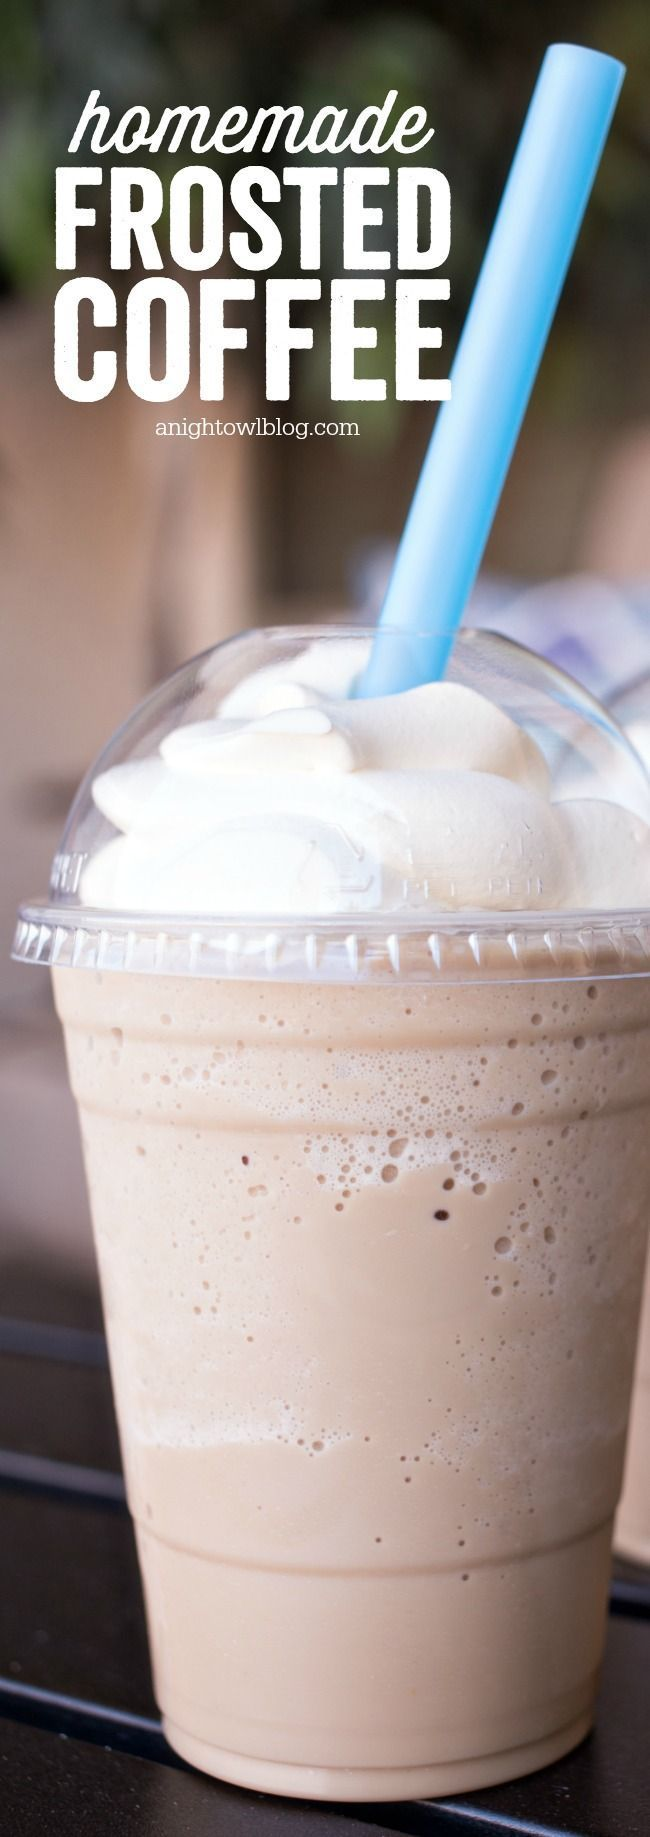 Homemade Frosted Coffee - the perfect coffee treat for the summer!